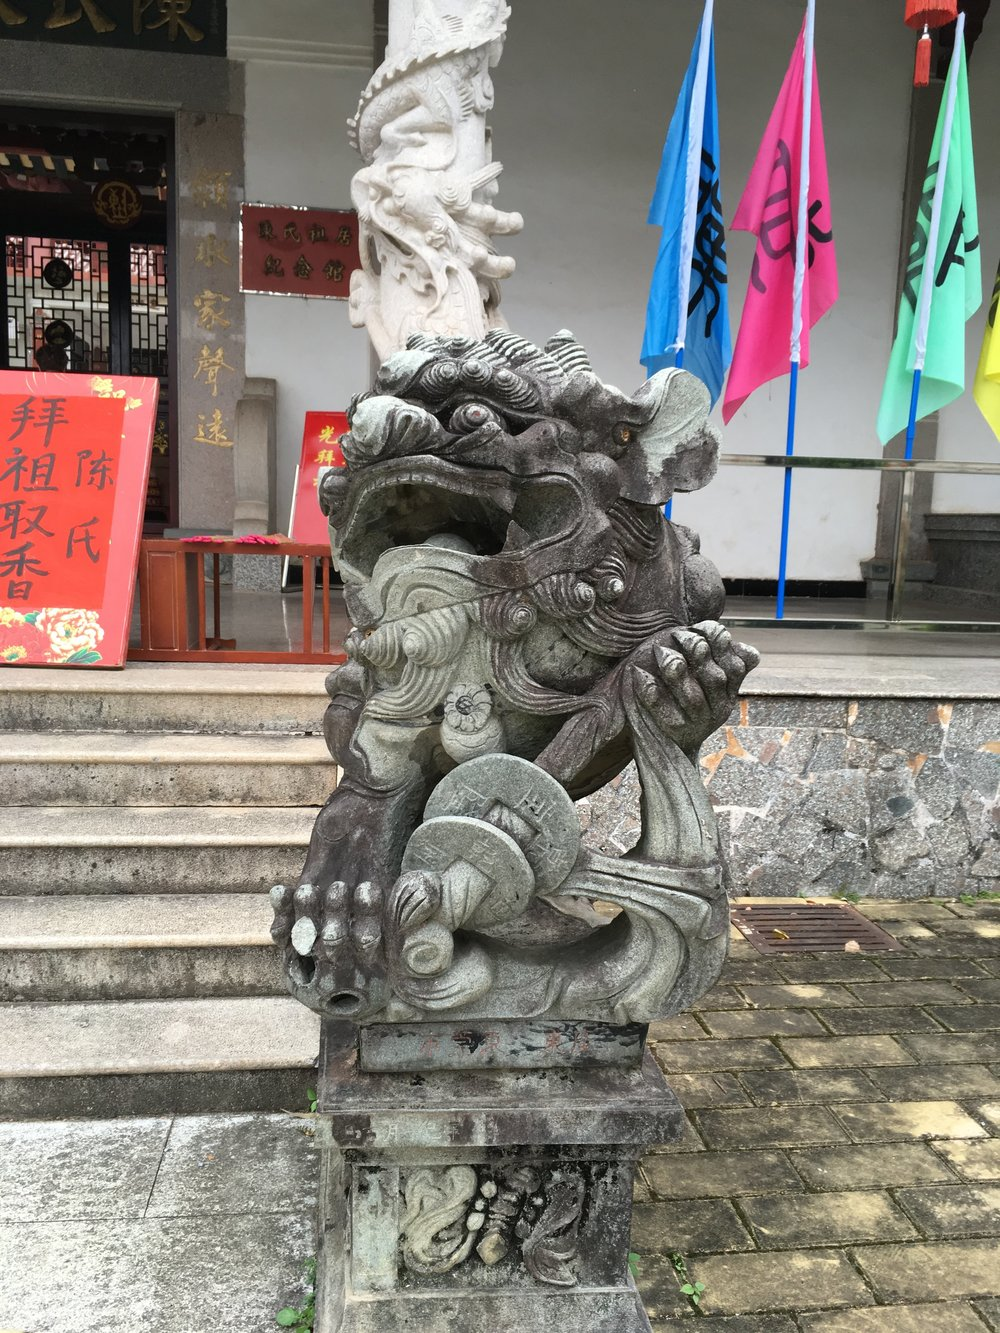 One of the lions outside the entrance to ancestral hall proper.